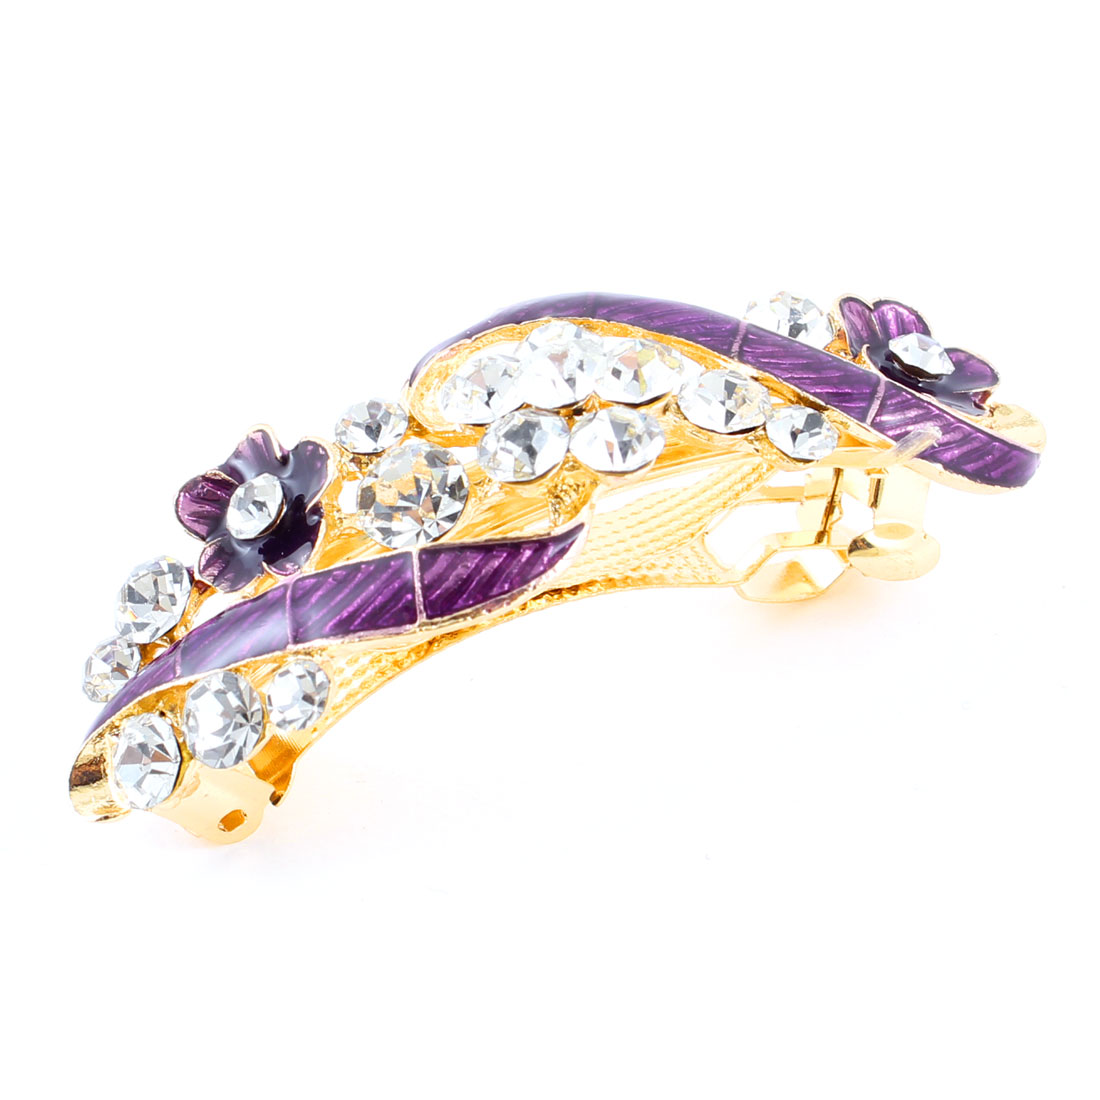 Woman Girl Purple Flower Design Shiny Rhinestone Barrette Hairpin